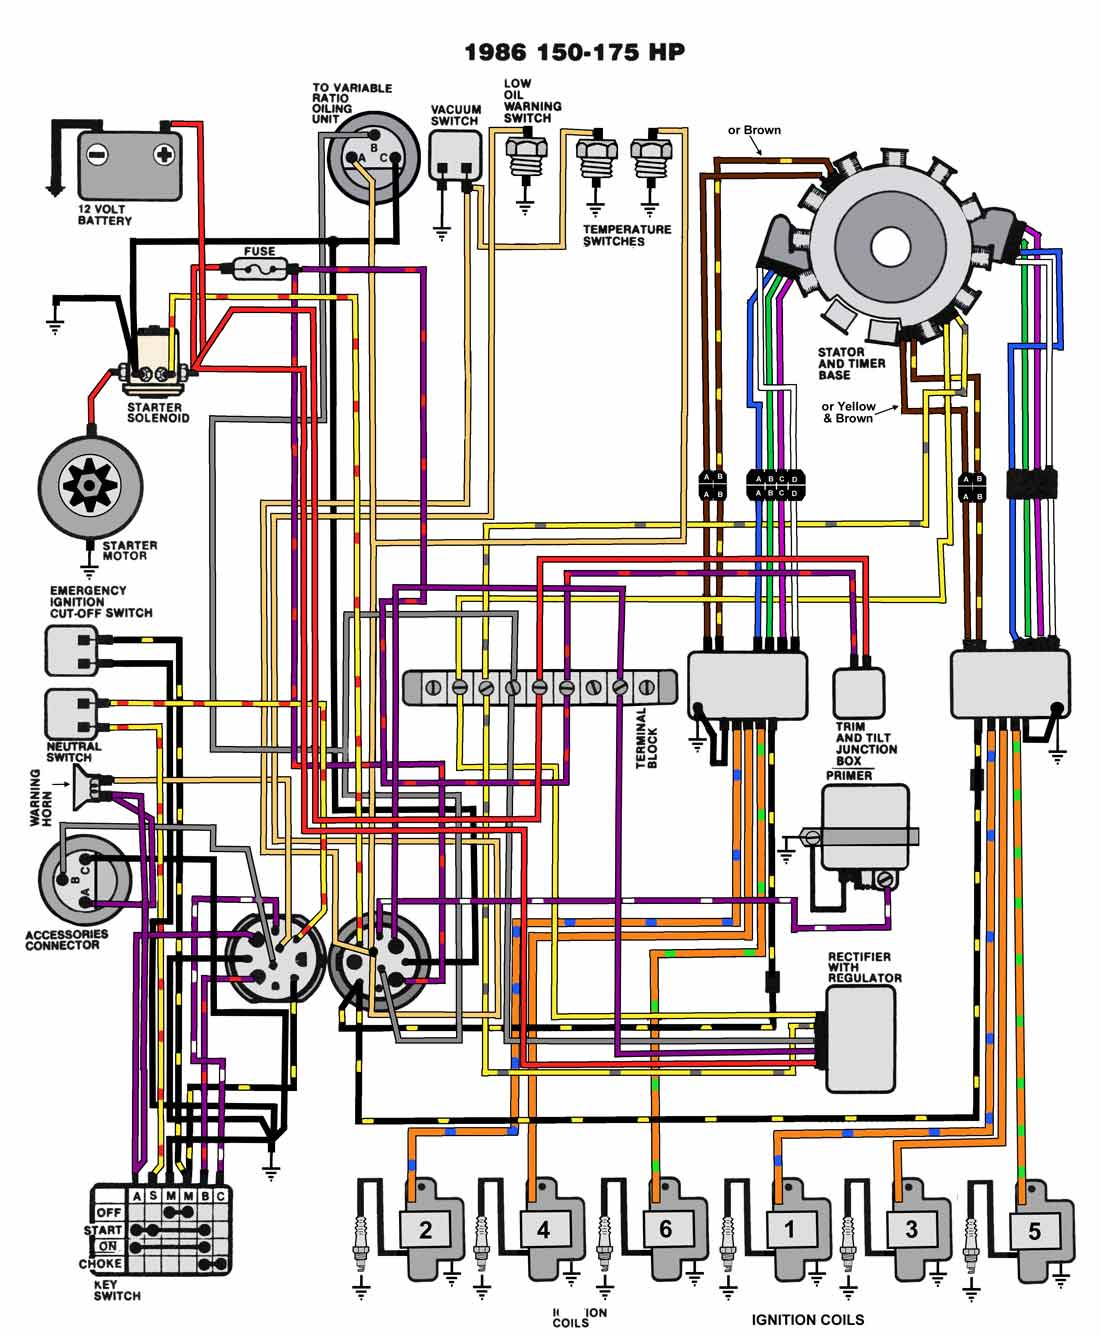 1986_150_175 mastertech marine evinrude johnson outboard wiring diagrams  at panicattacktreatment.co